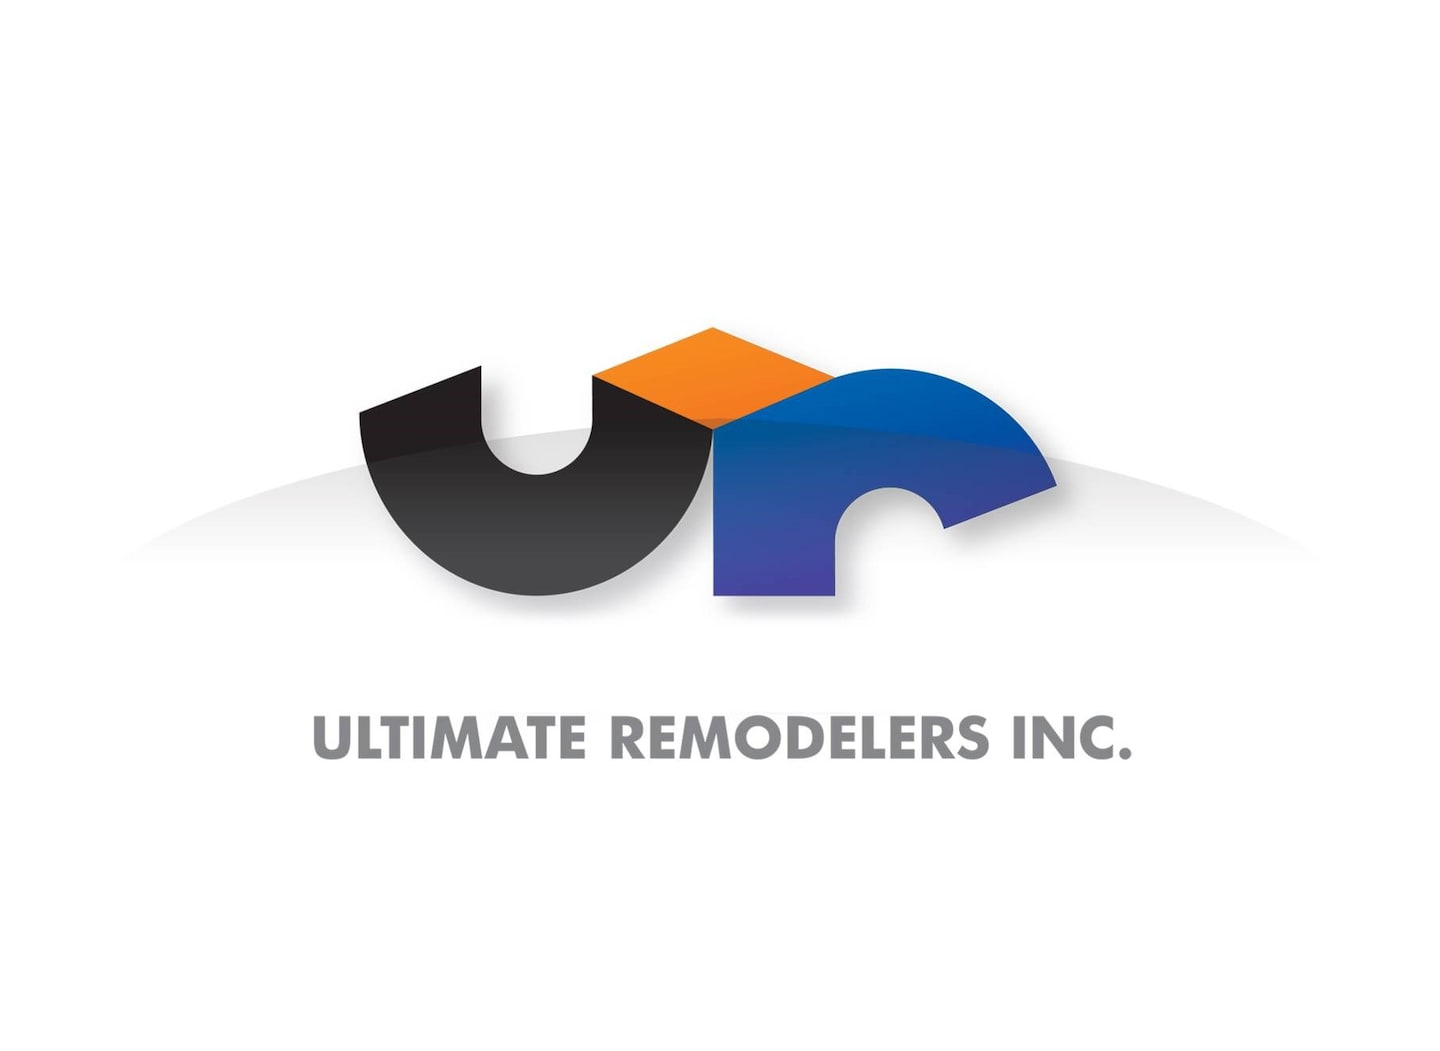 Ultimate Remodelers Inc